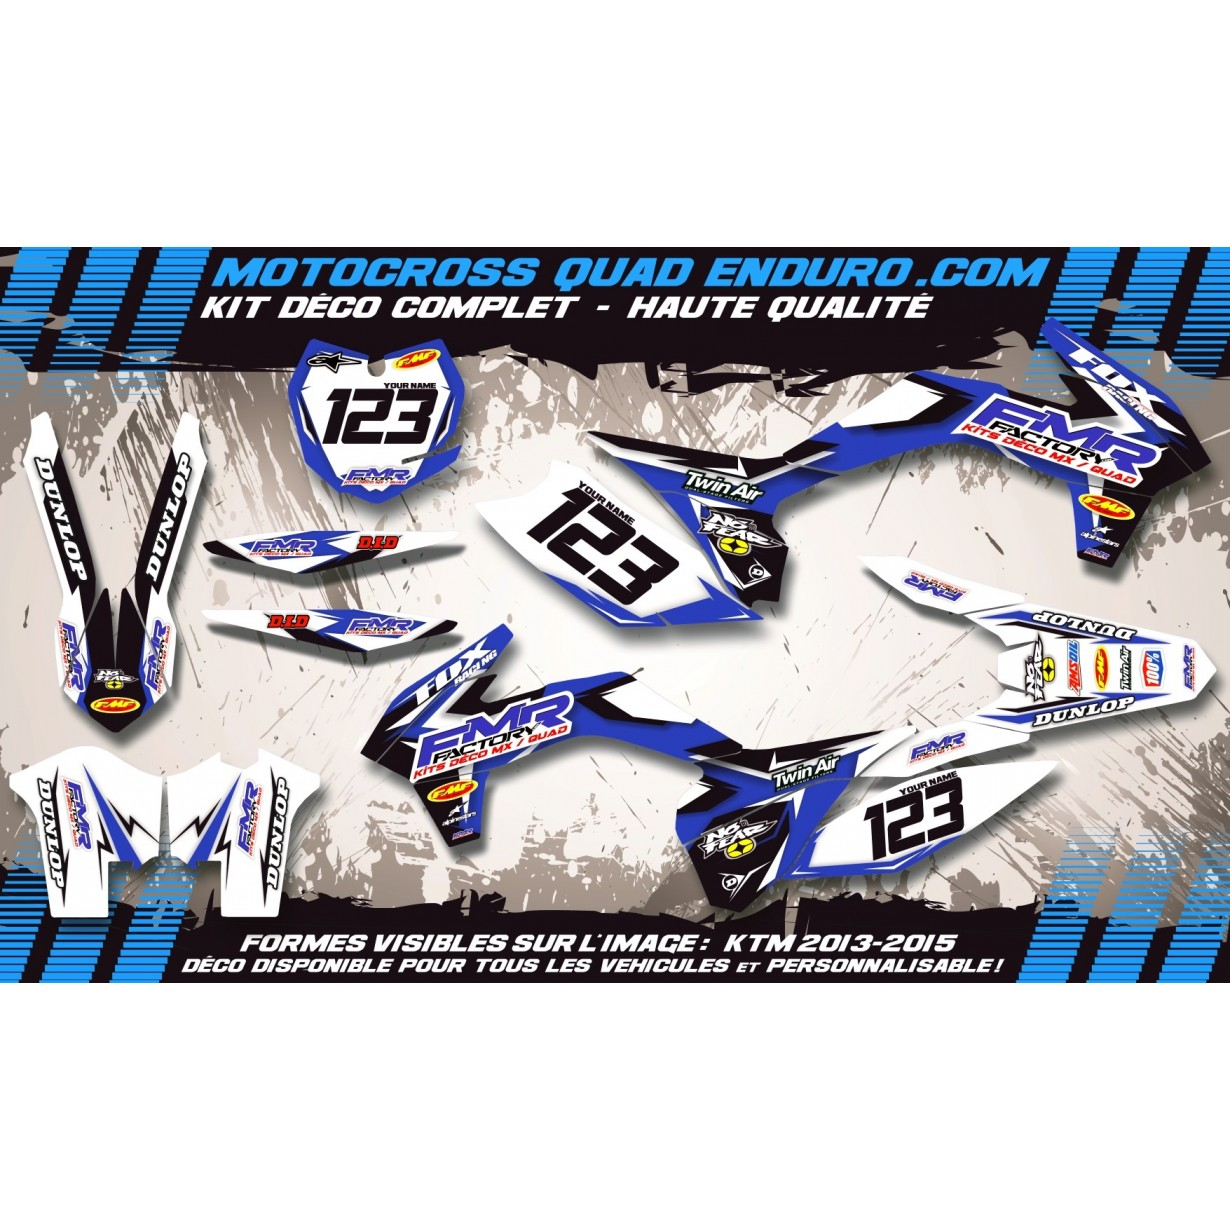 KIT DÉCO Perso 660 RAPTOR Quad Fmr Factory MA13E